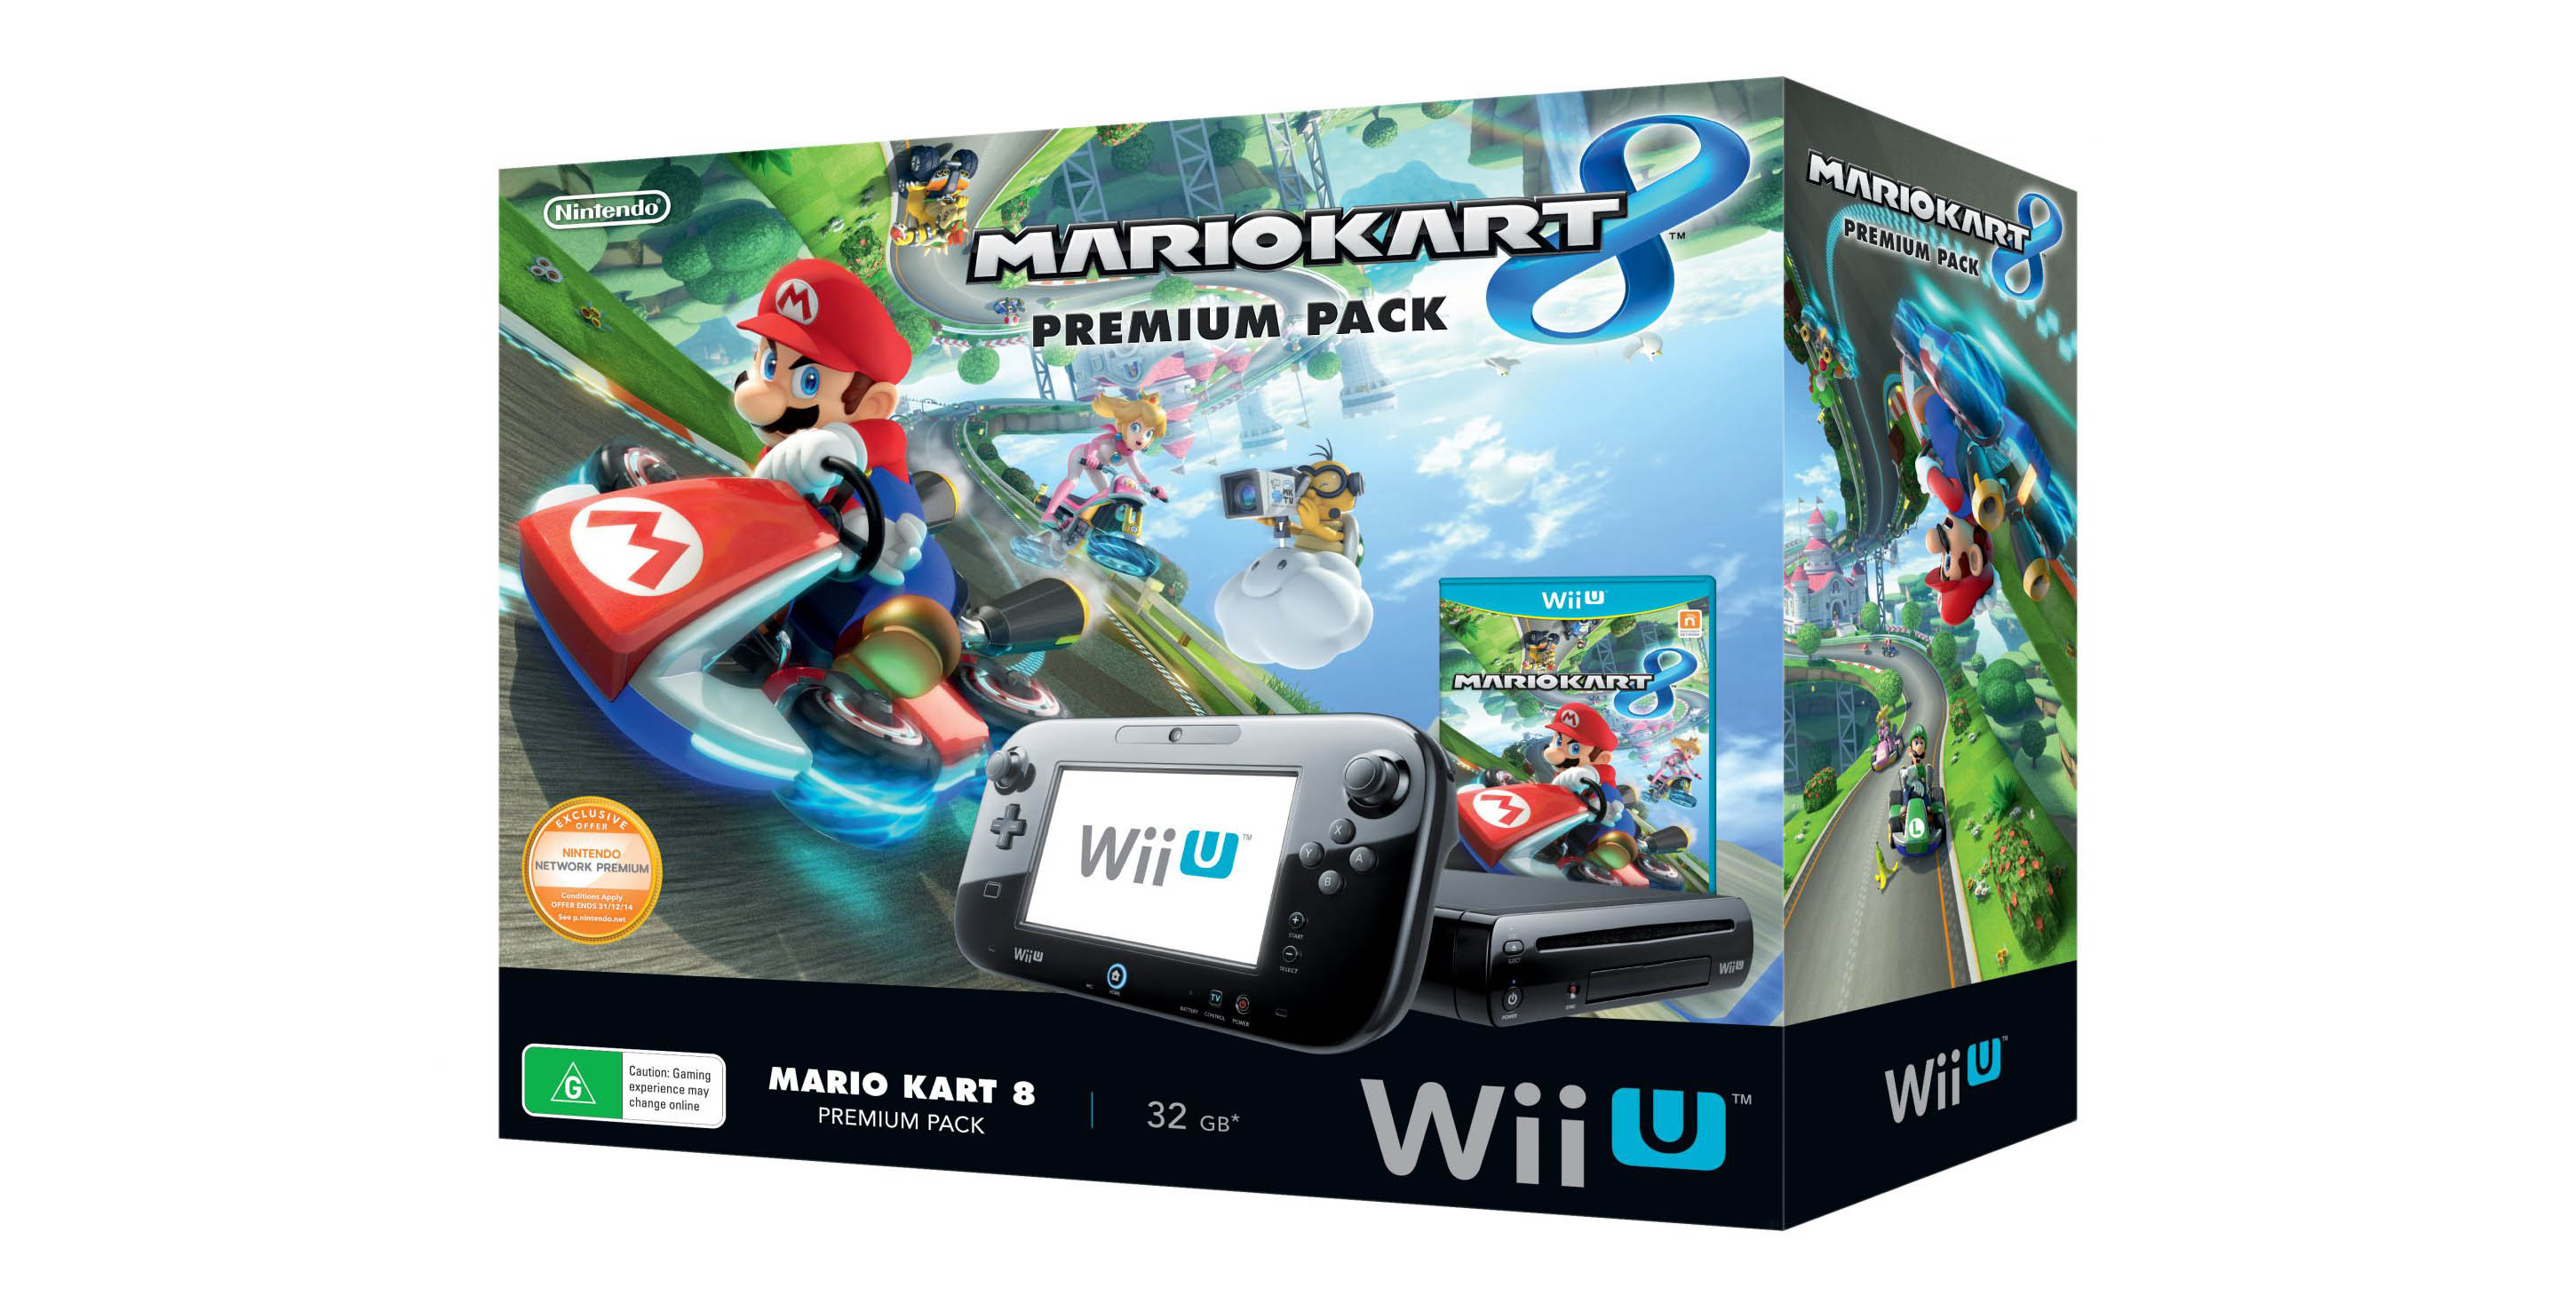 europa y australia tendr n paquete de mario kart 8 y wii u. Black Bedroom Furniture Sets. Home Design Ideas